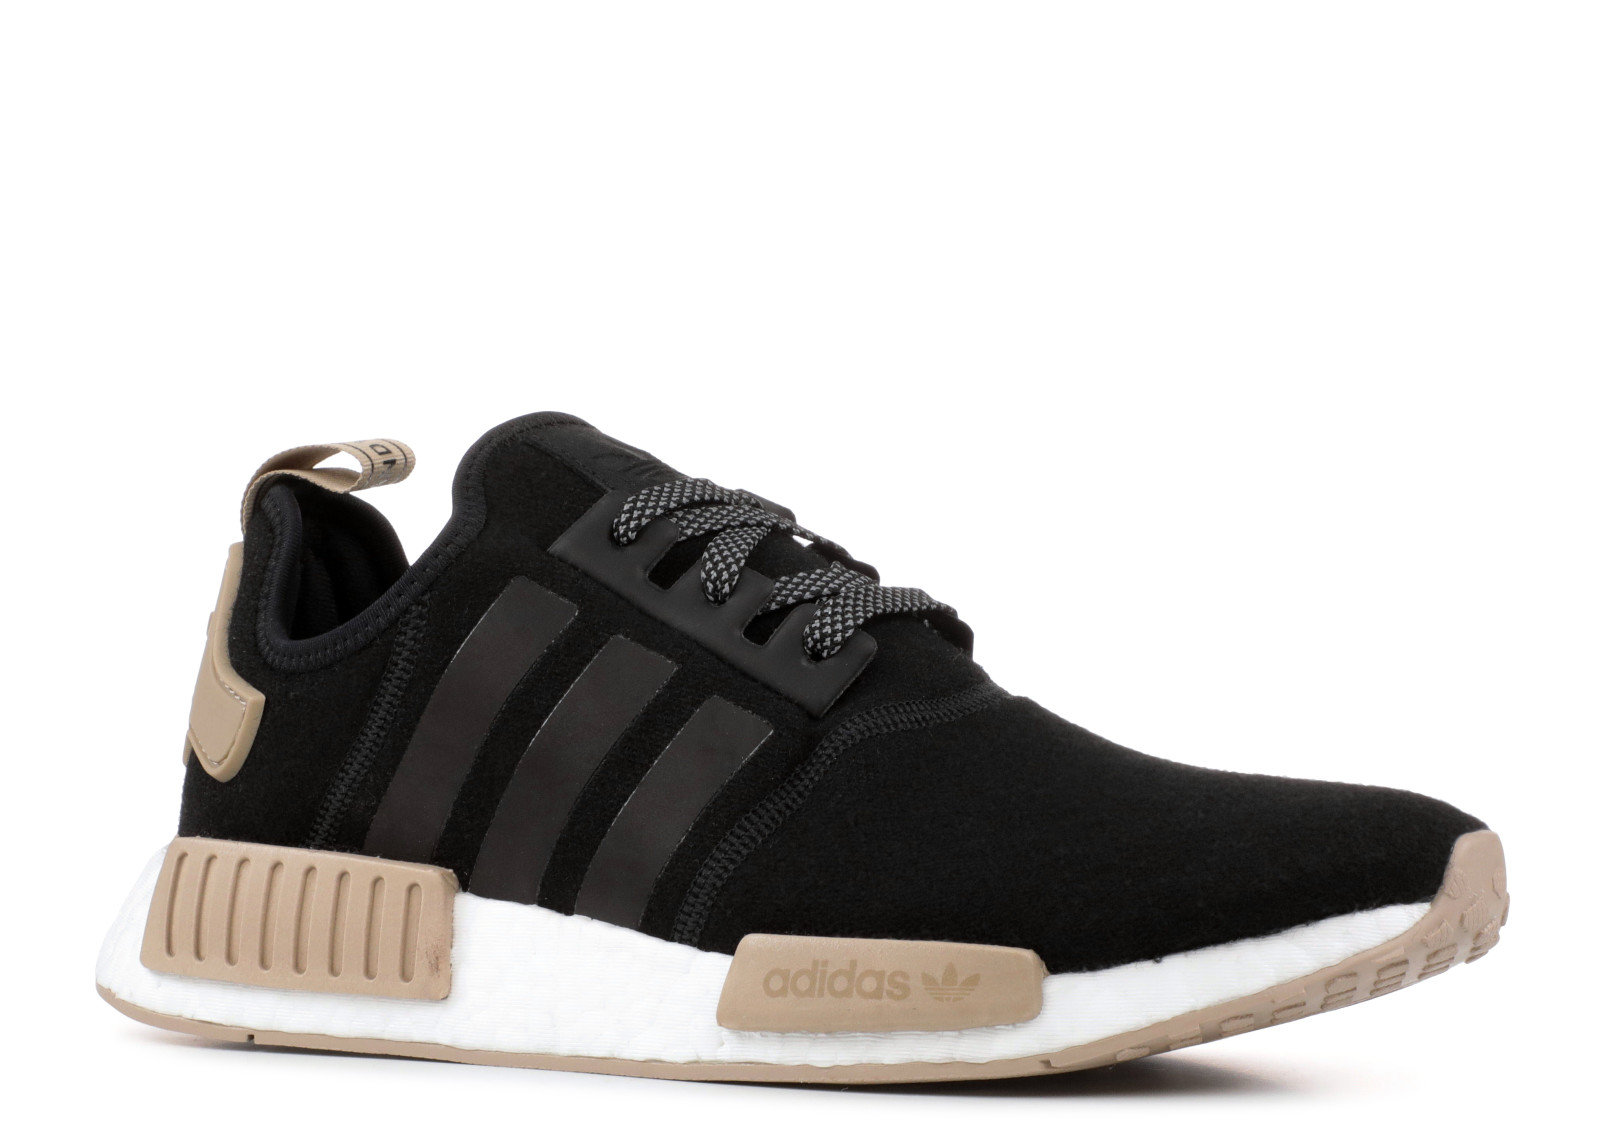 huge selection of a26e8 95989 Adidas NMD R1